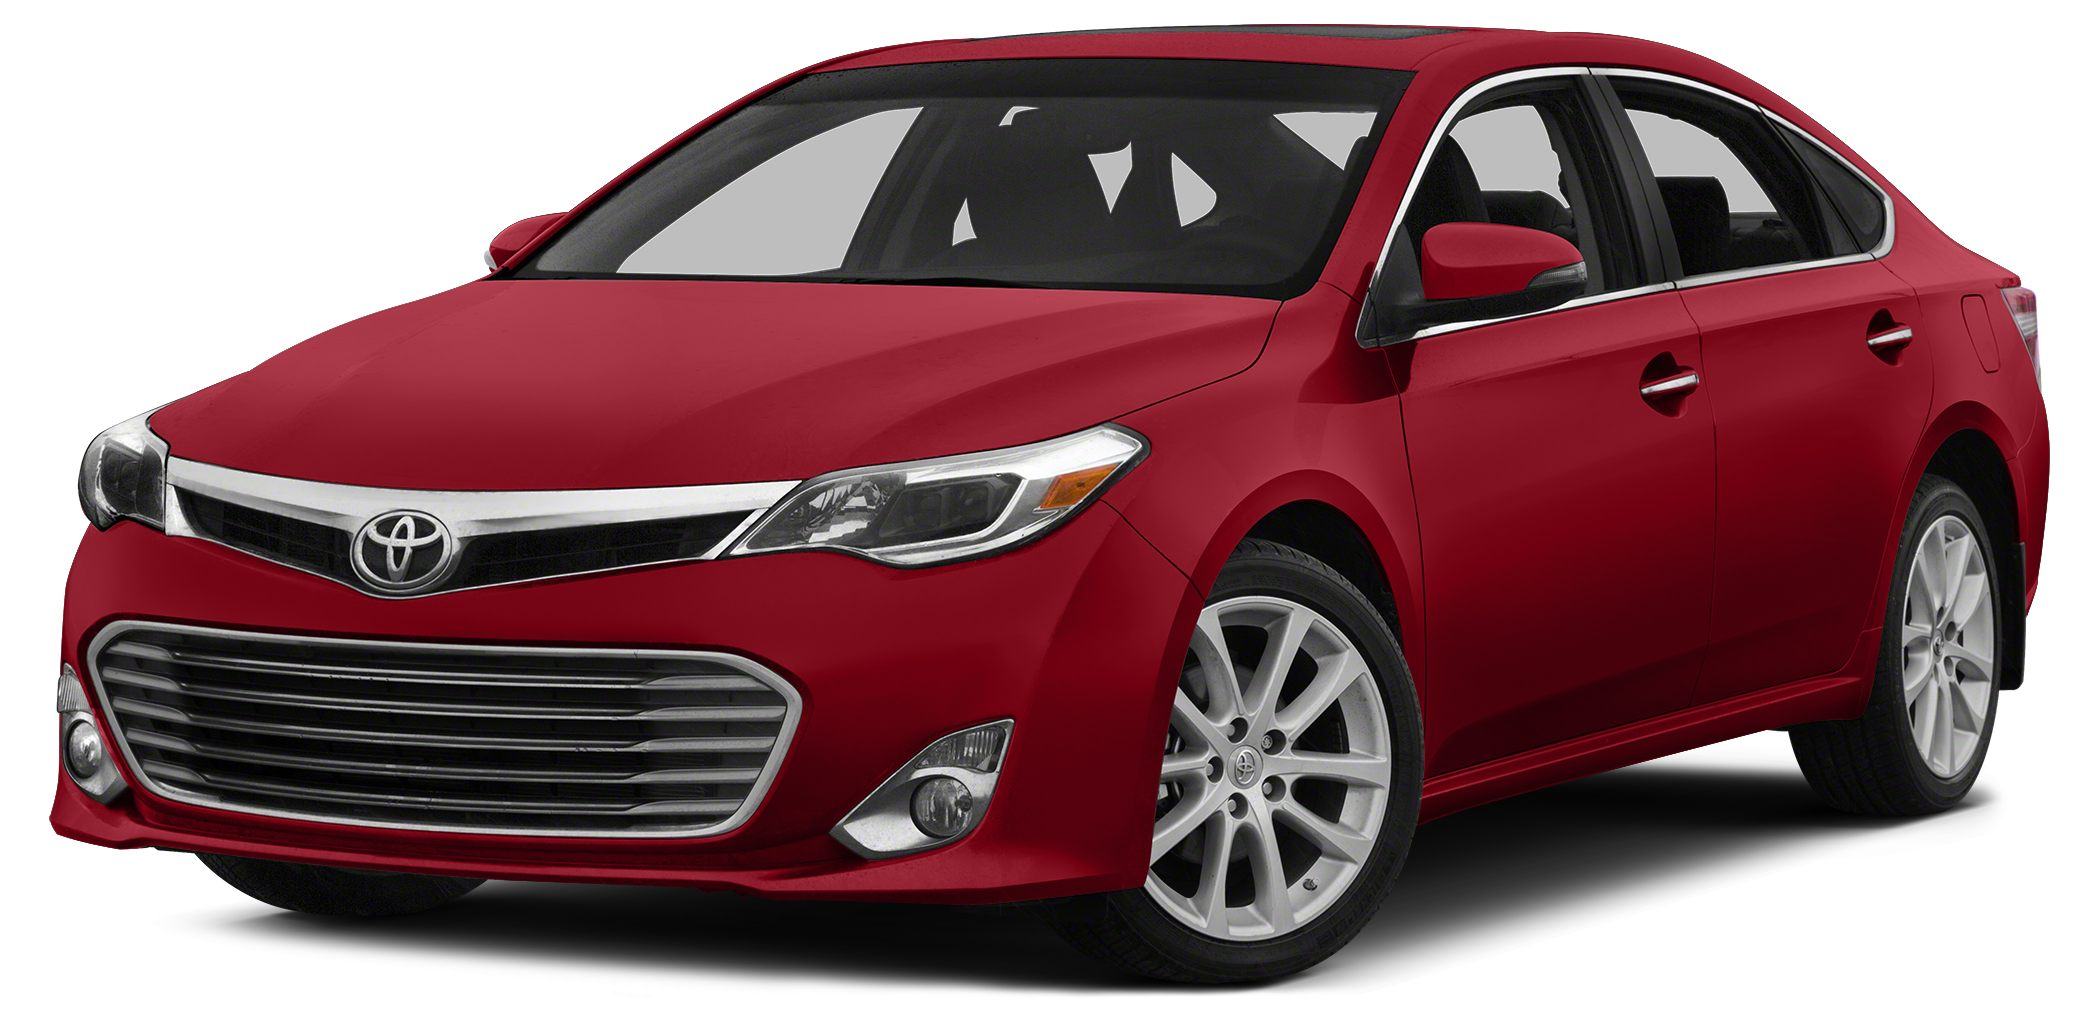 2015 Toyota Avalon XLE Premium All prices plus tax title license  doc fee 395 with approved